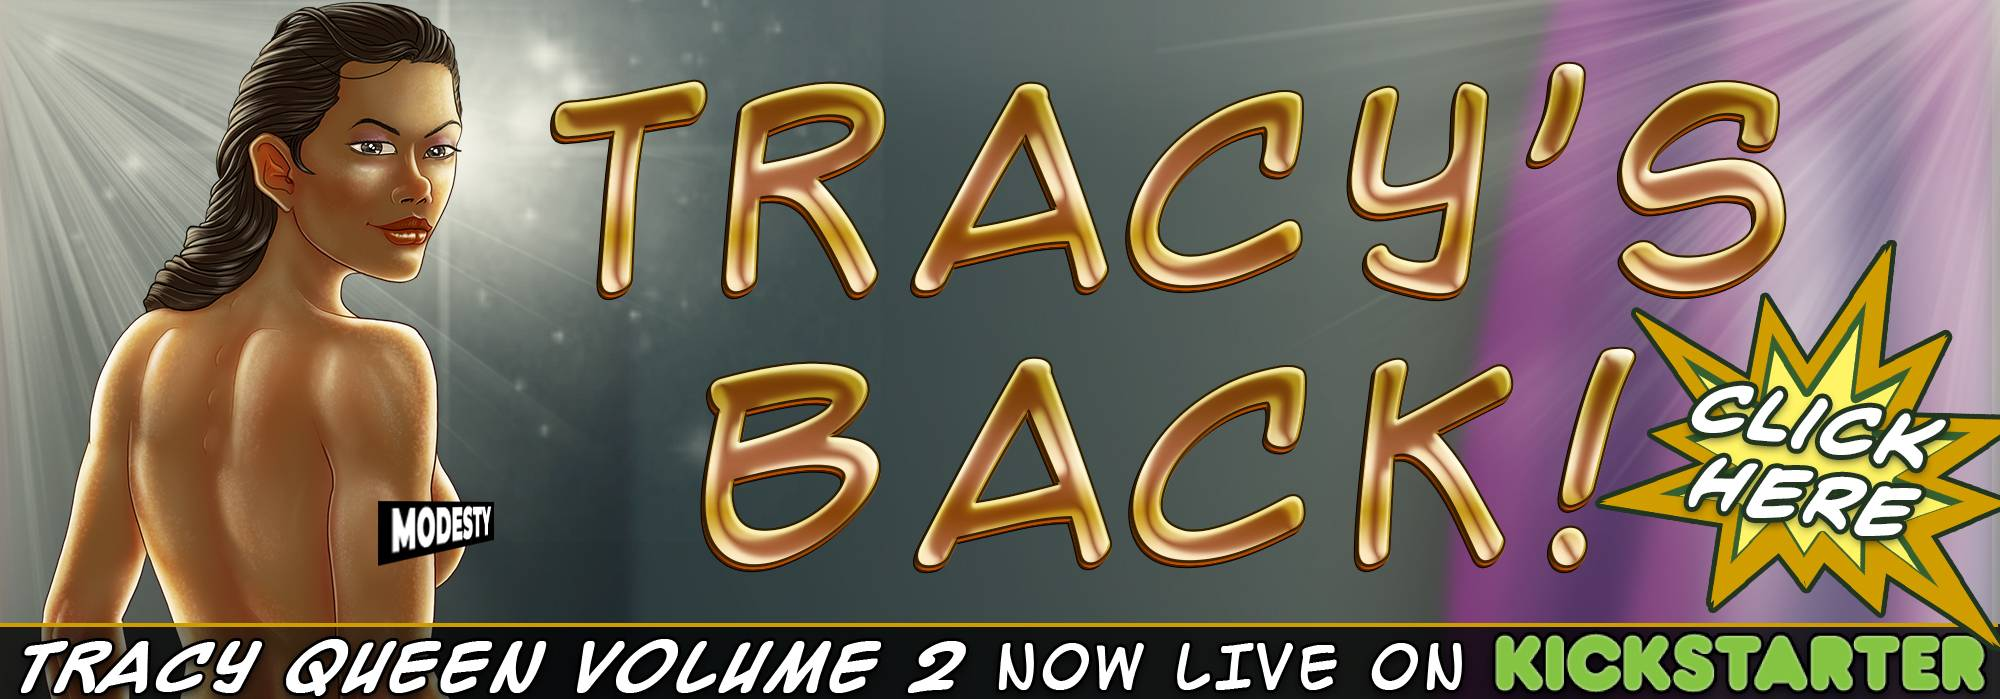 Tracy's back!